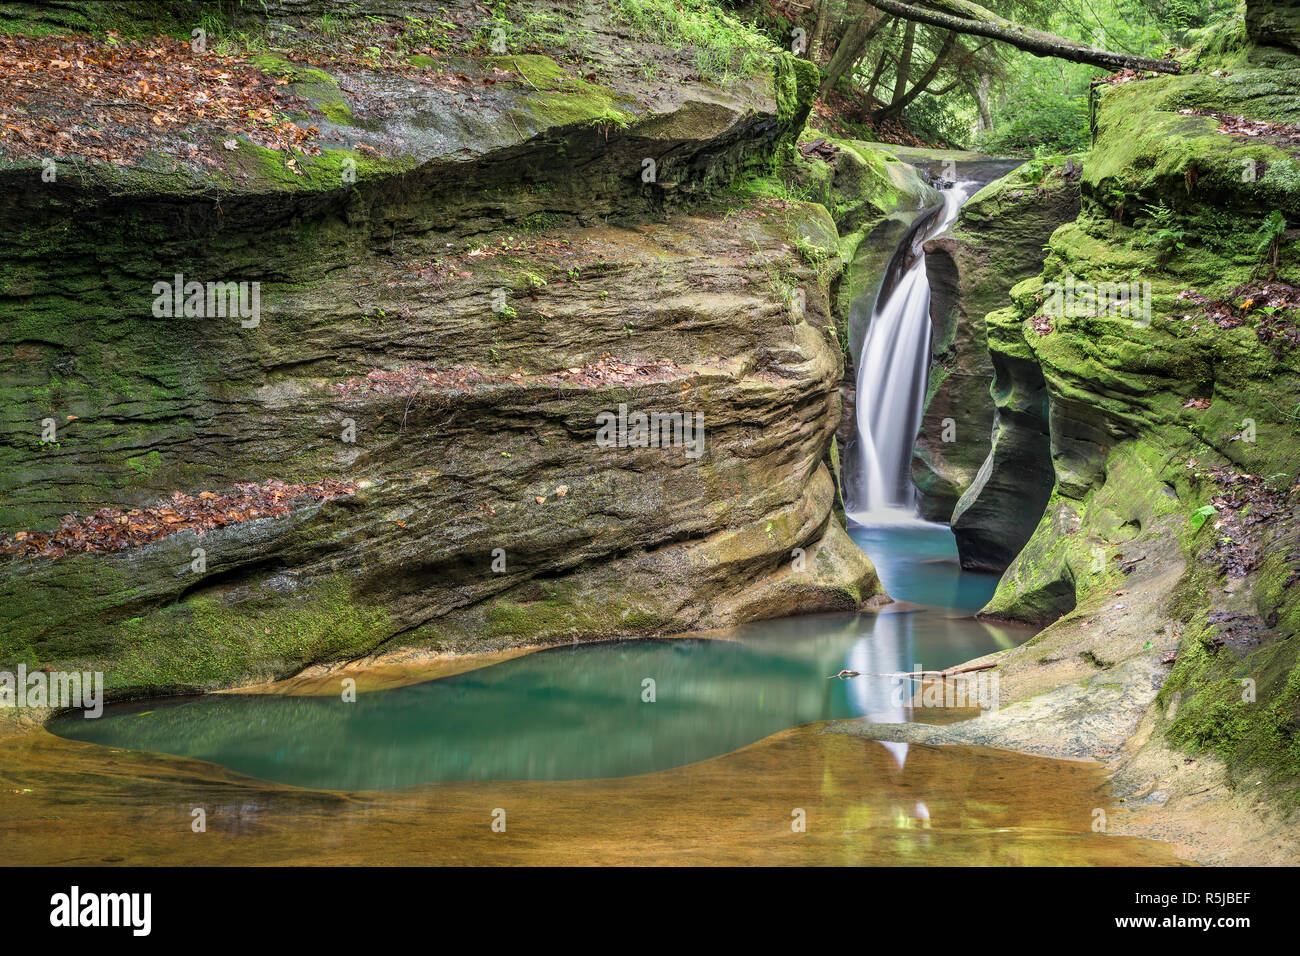 Robinson Falls, sometimes called Corkscrew Falls, is a beautiful little waterfall flowing in the Hocking Hills of Ohio. Stock Photo